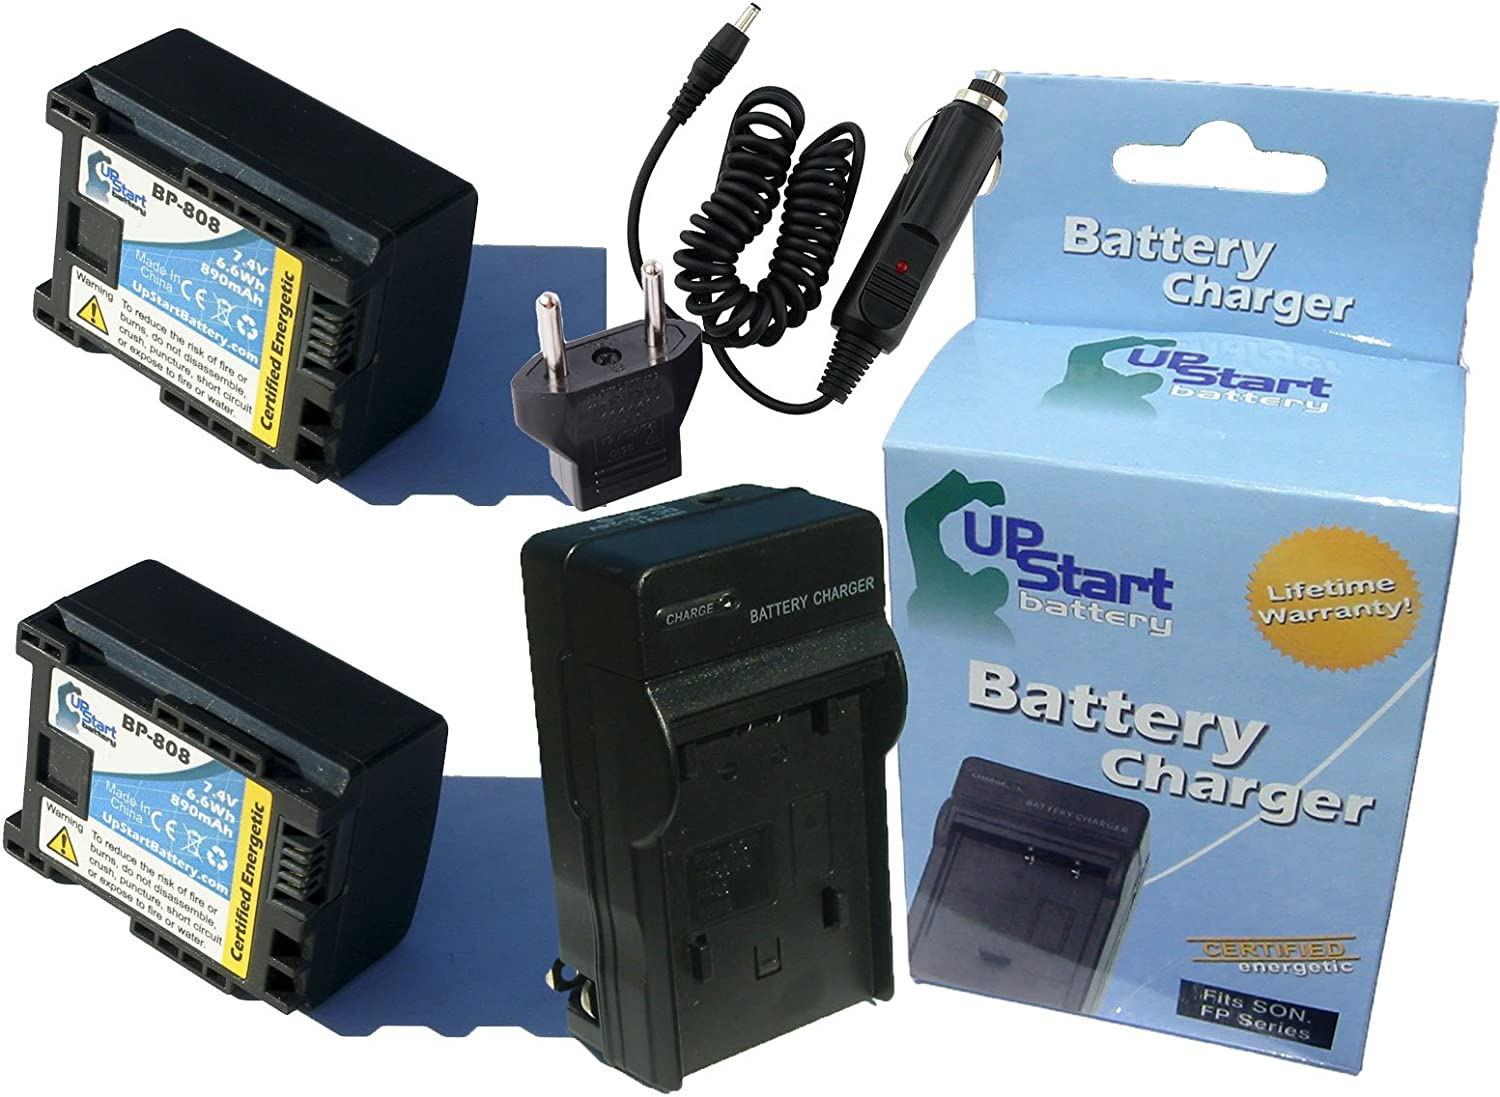 Compatible with Canon BP-808 Digital Camcorder Battery and Charger 2 Pack Replacement for Canon FS400 Battery and Charger with Car /& EU Adapters Decoded 890mAh 7.4V Lithium-Ion